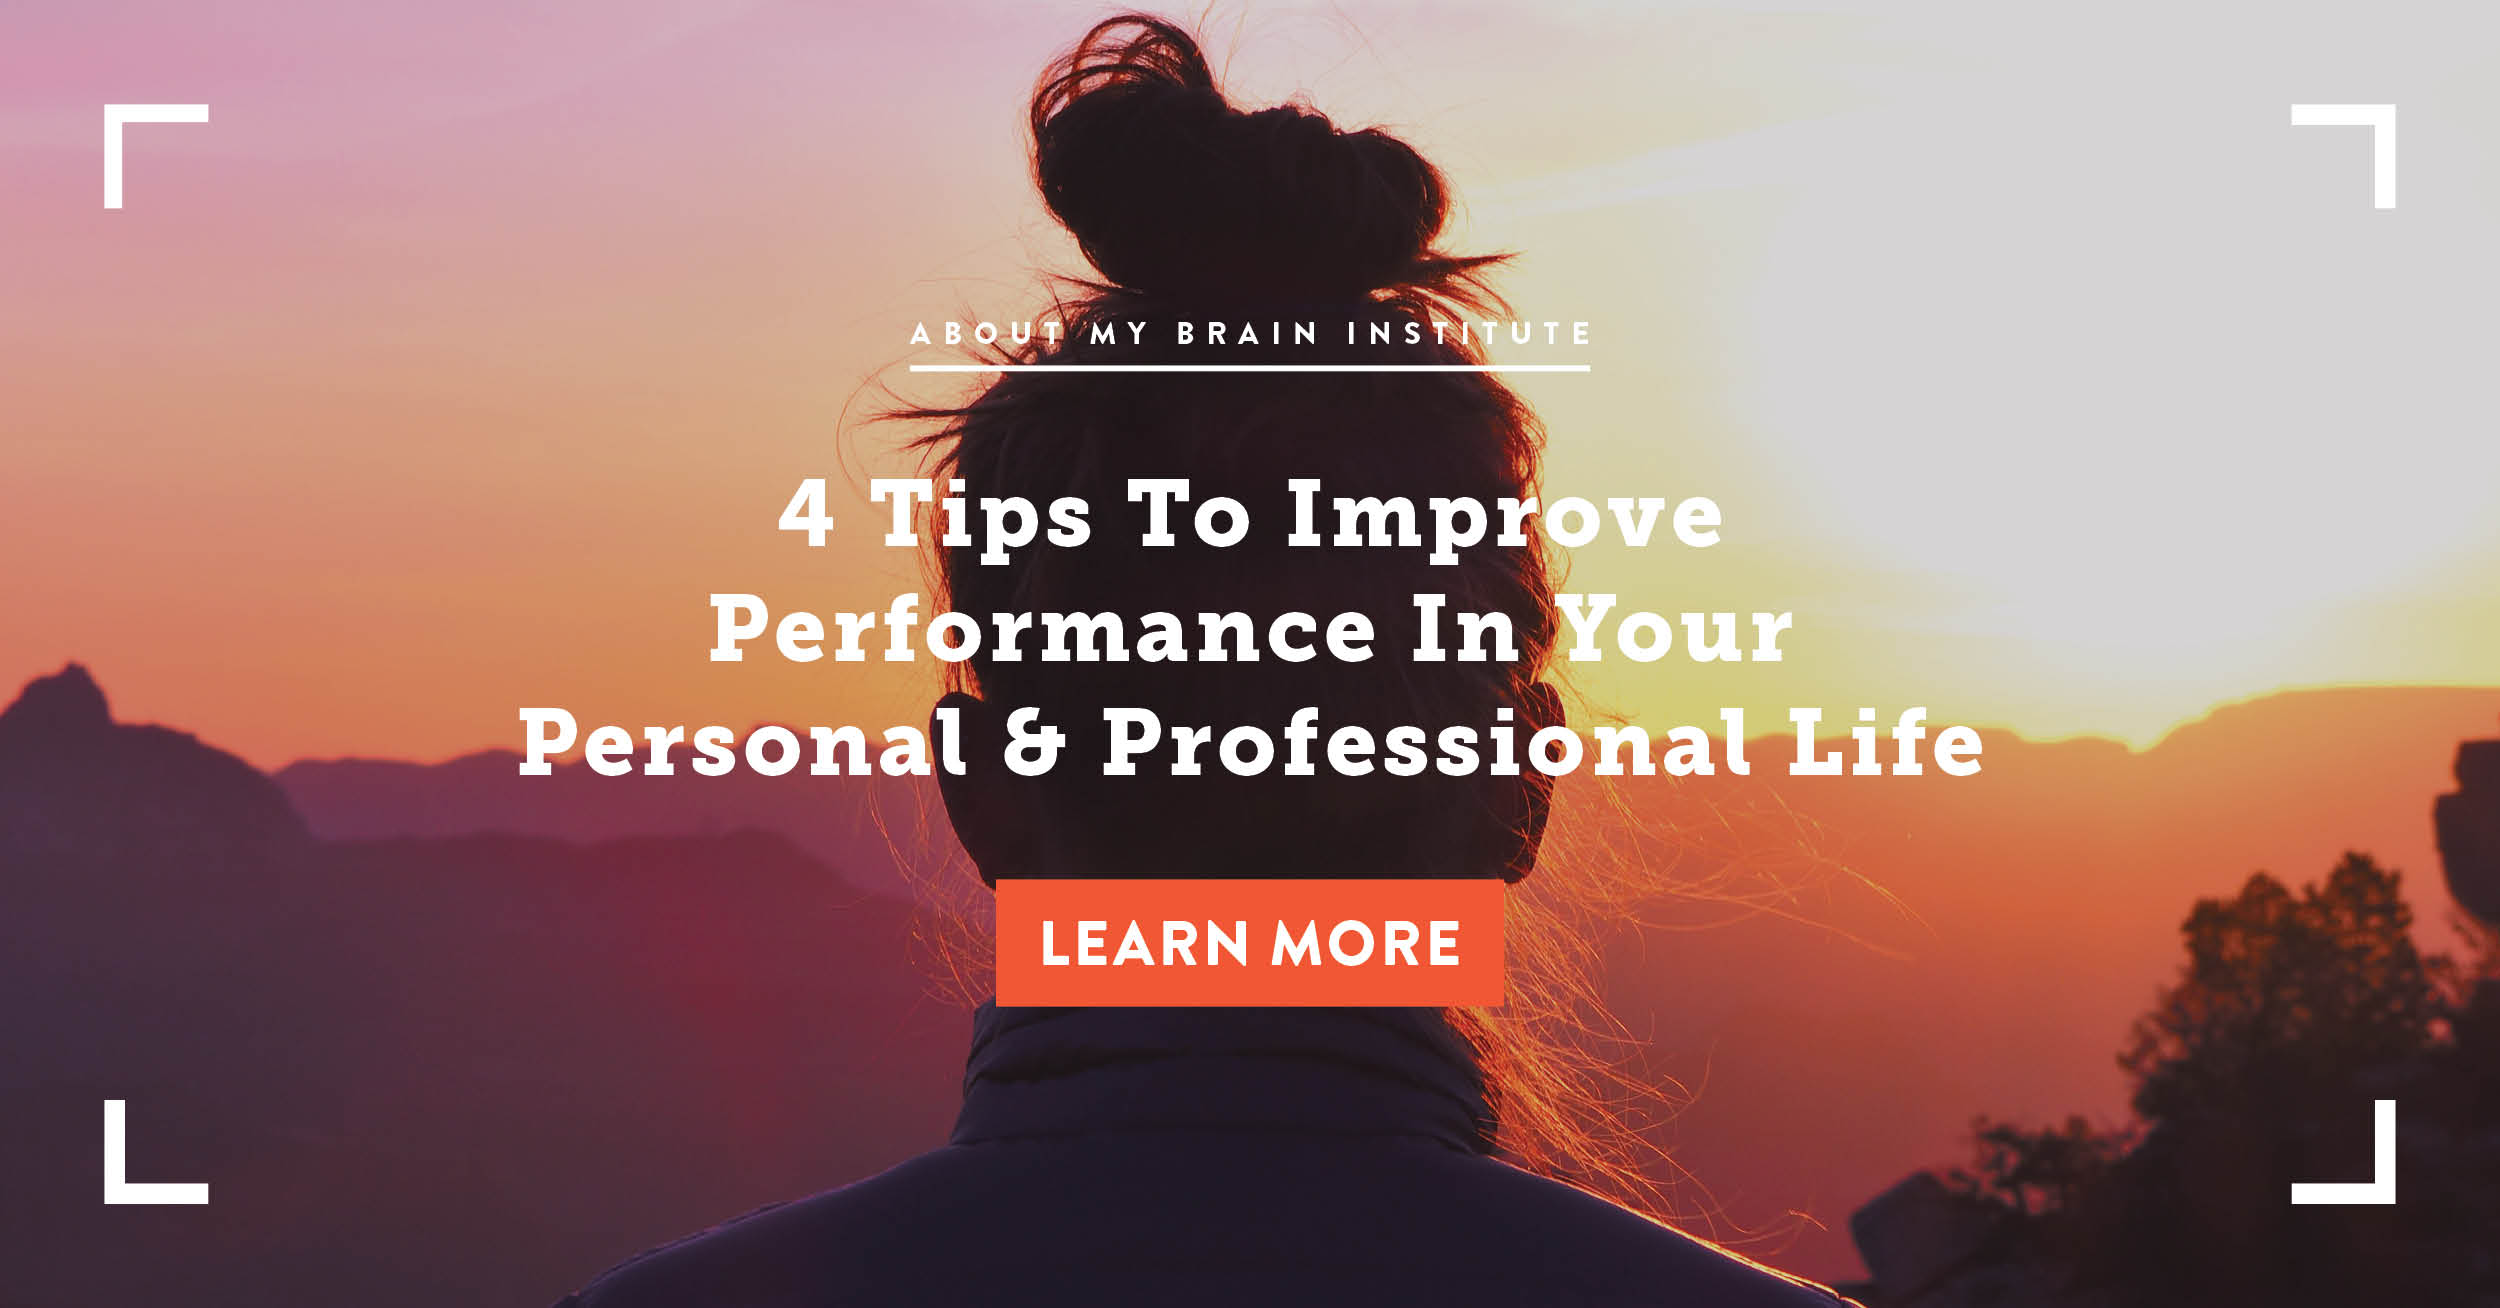 4 Tips To Improve Performance In Your Personal & Professional Life